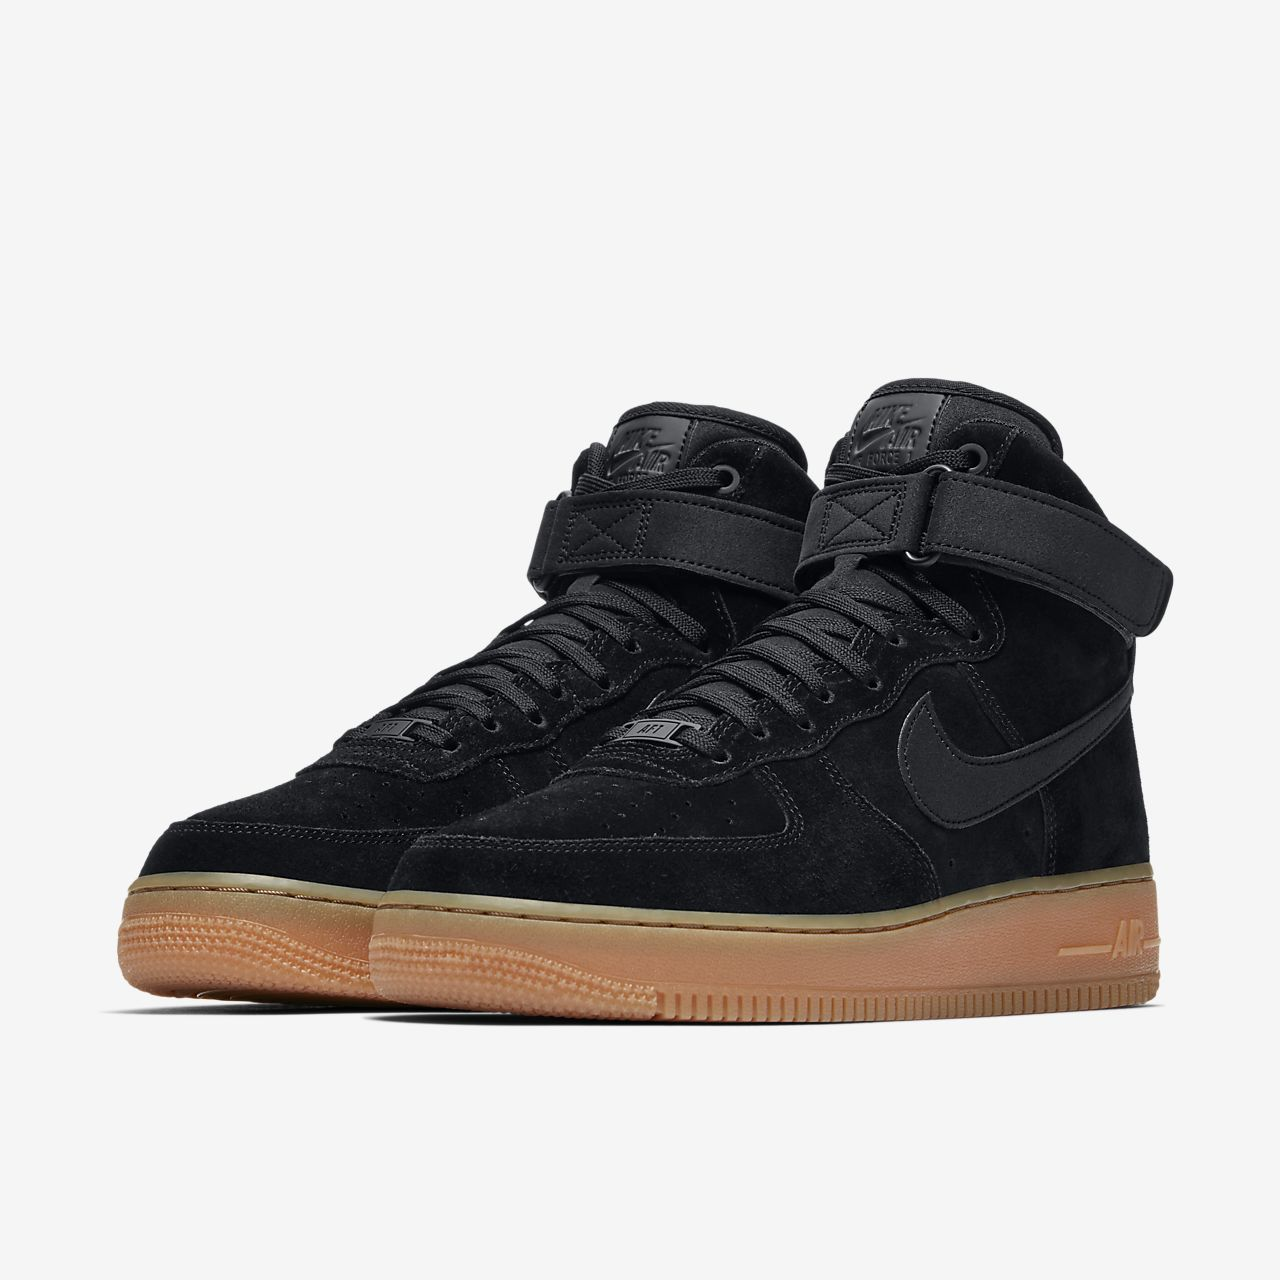 reputable site 1e7db 0c816 Nike Air Force 1 High '07 LV8 Suede Men's Shoe | Carl in 2019 ...